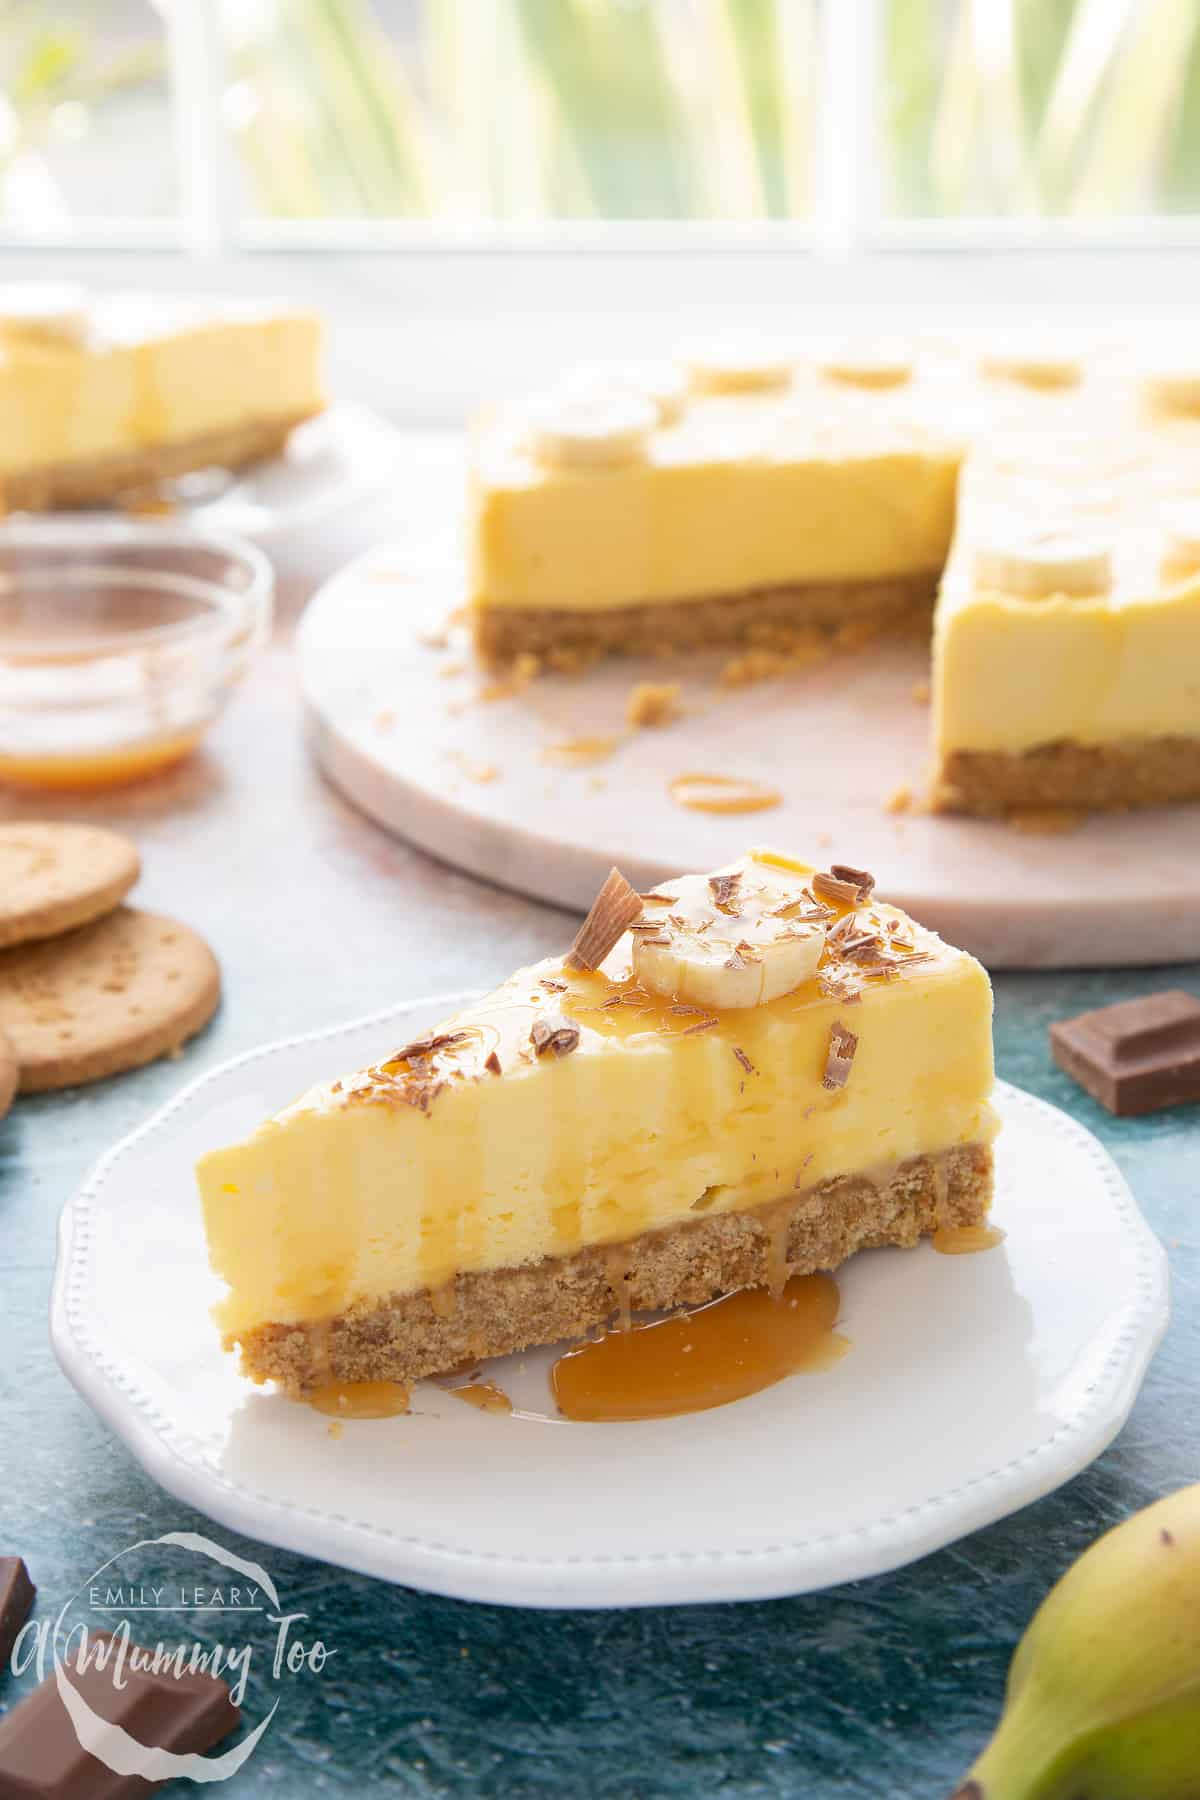 A slice of banoffee pie cheesecake on a white plate. It's drizzled with toffee sauce.